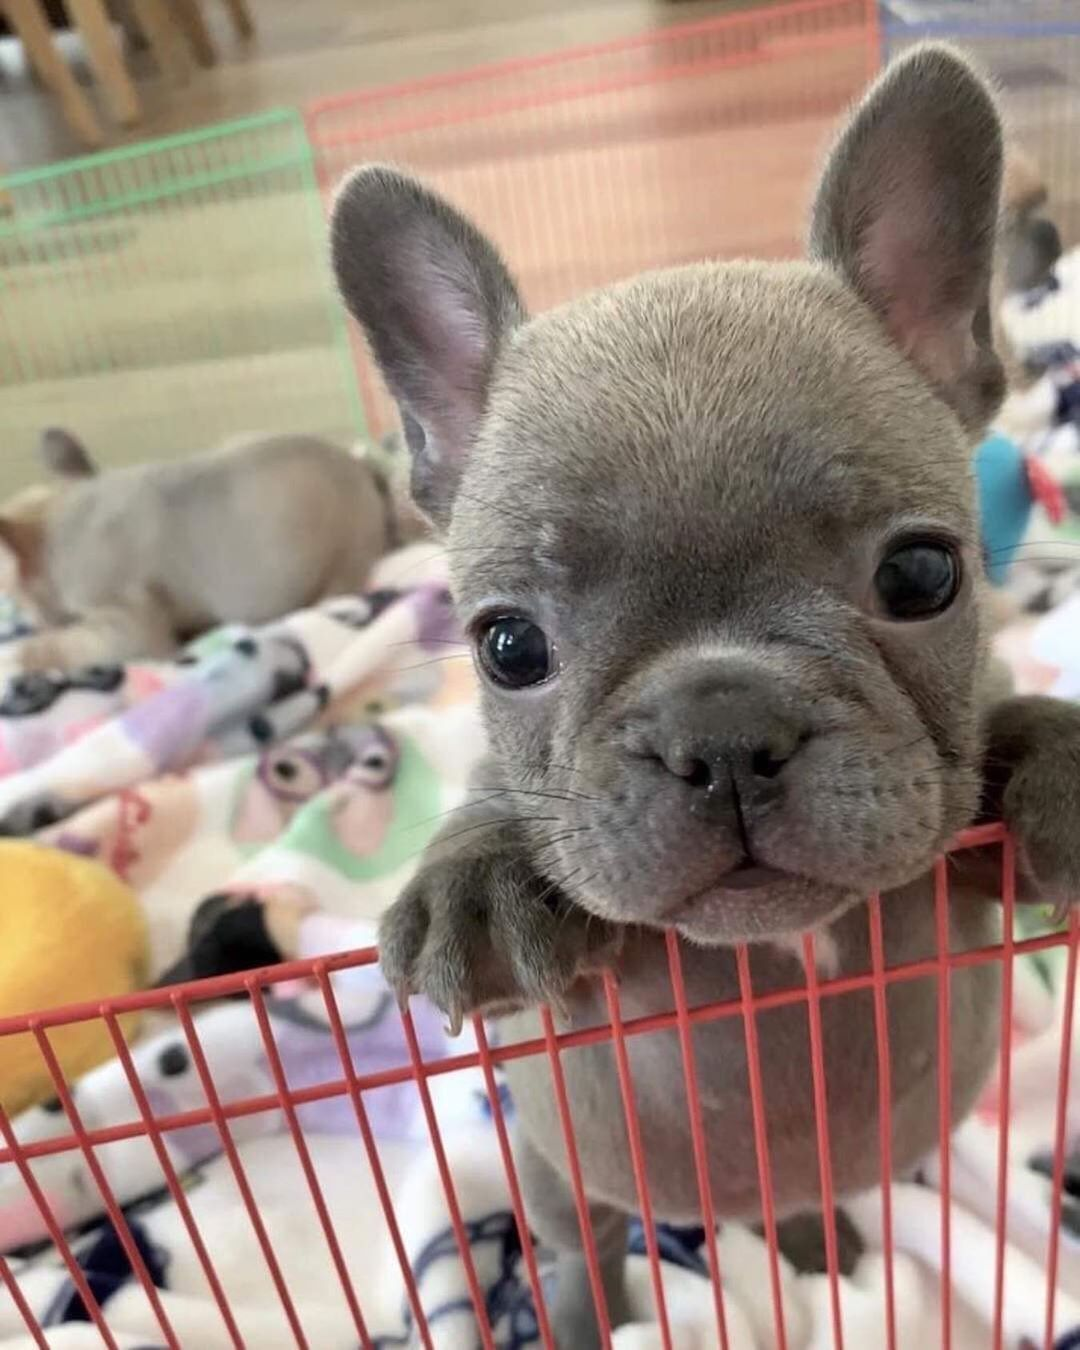 Pin By Mals Eugene On Dogs In 2020 Cute Funny Animals Cute Dogs Cute Dogs And Puppies